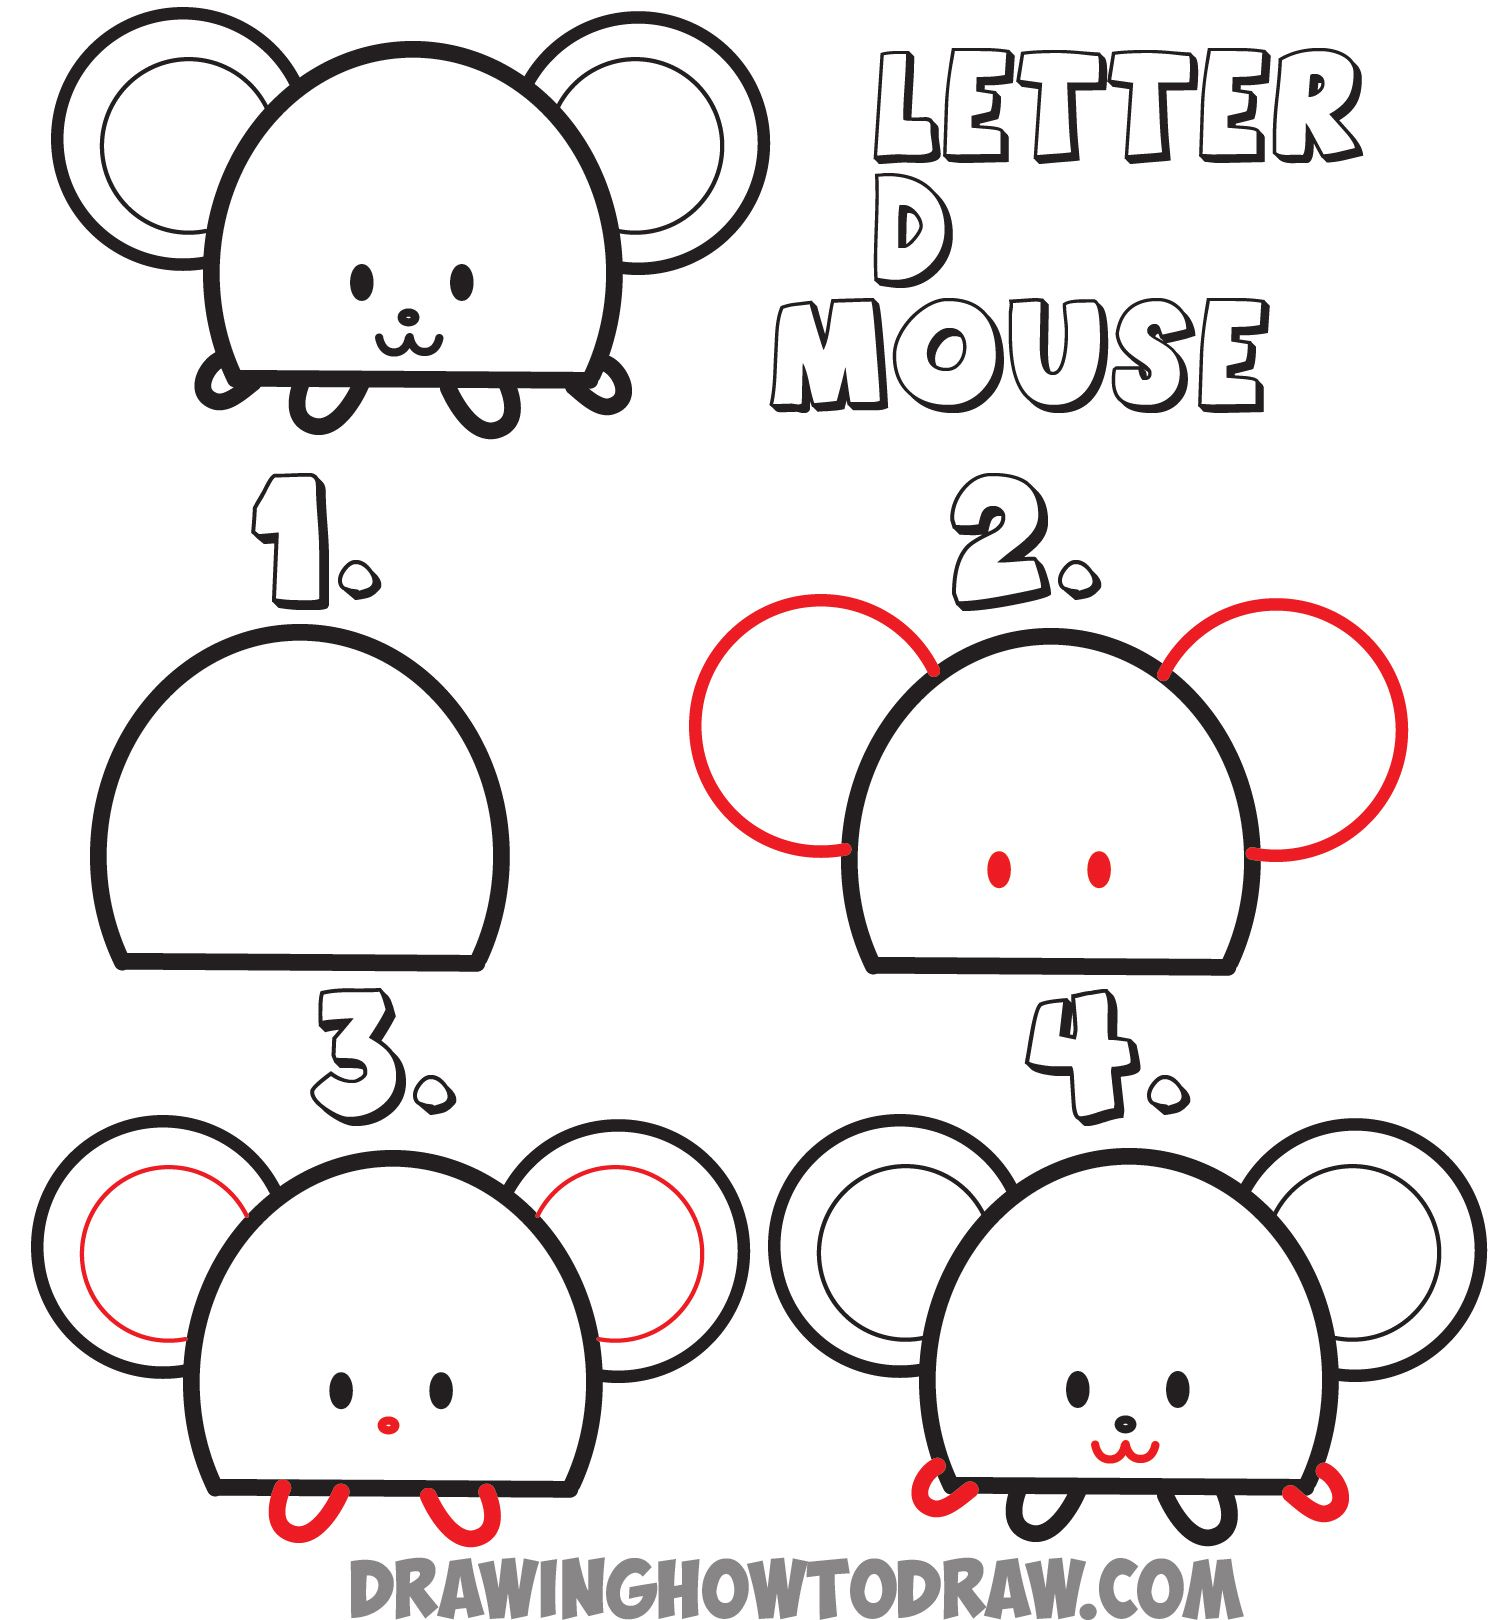 Uncategorized How To Draw A Animal Step By Step how to draw a cartoon mouse from the letter d shape drawing for huge guide animals uppercase tutorial kids step by drawing